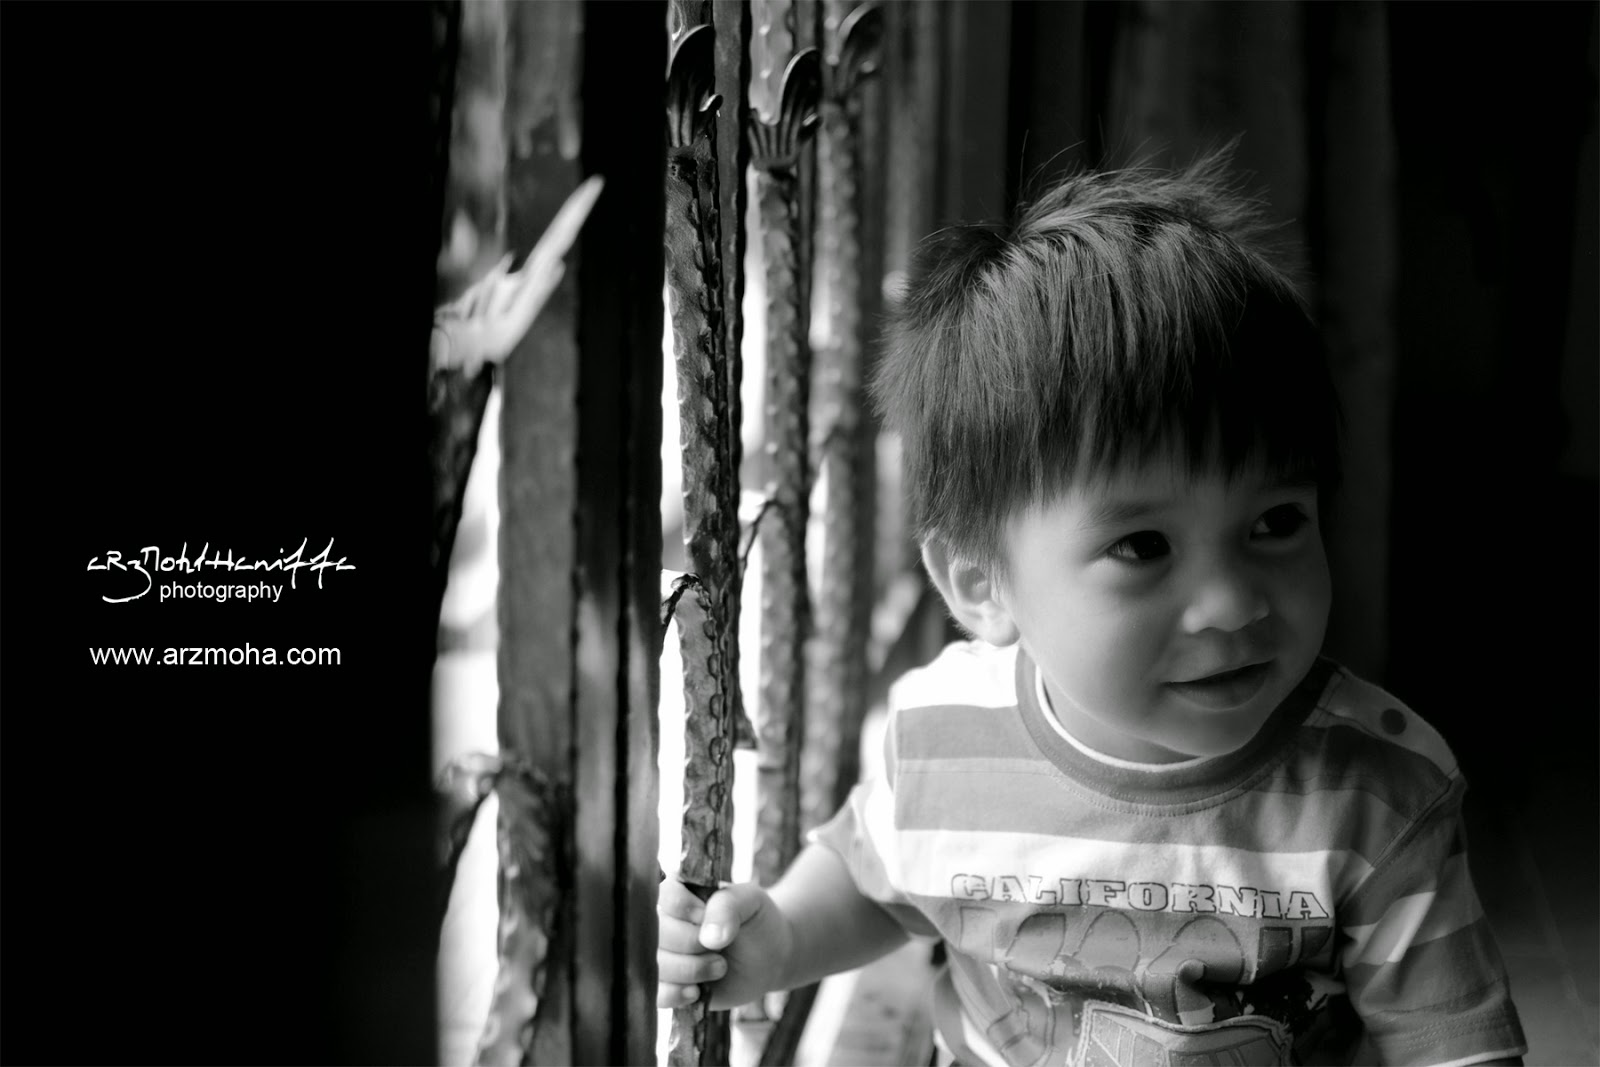 black and white, kids, baby, kids photography, boy, kids world, gambar cantik, kanak-kanak comel